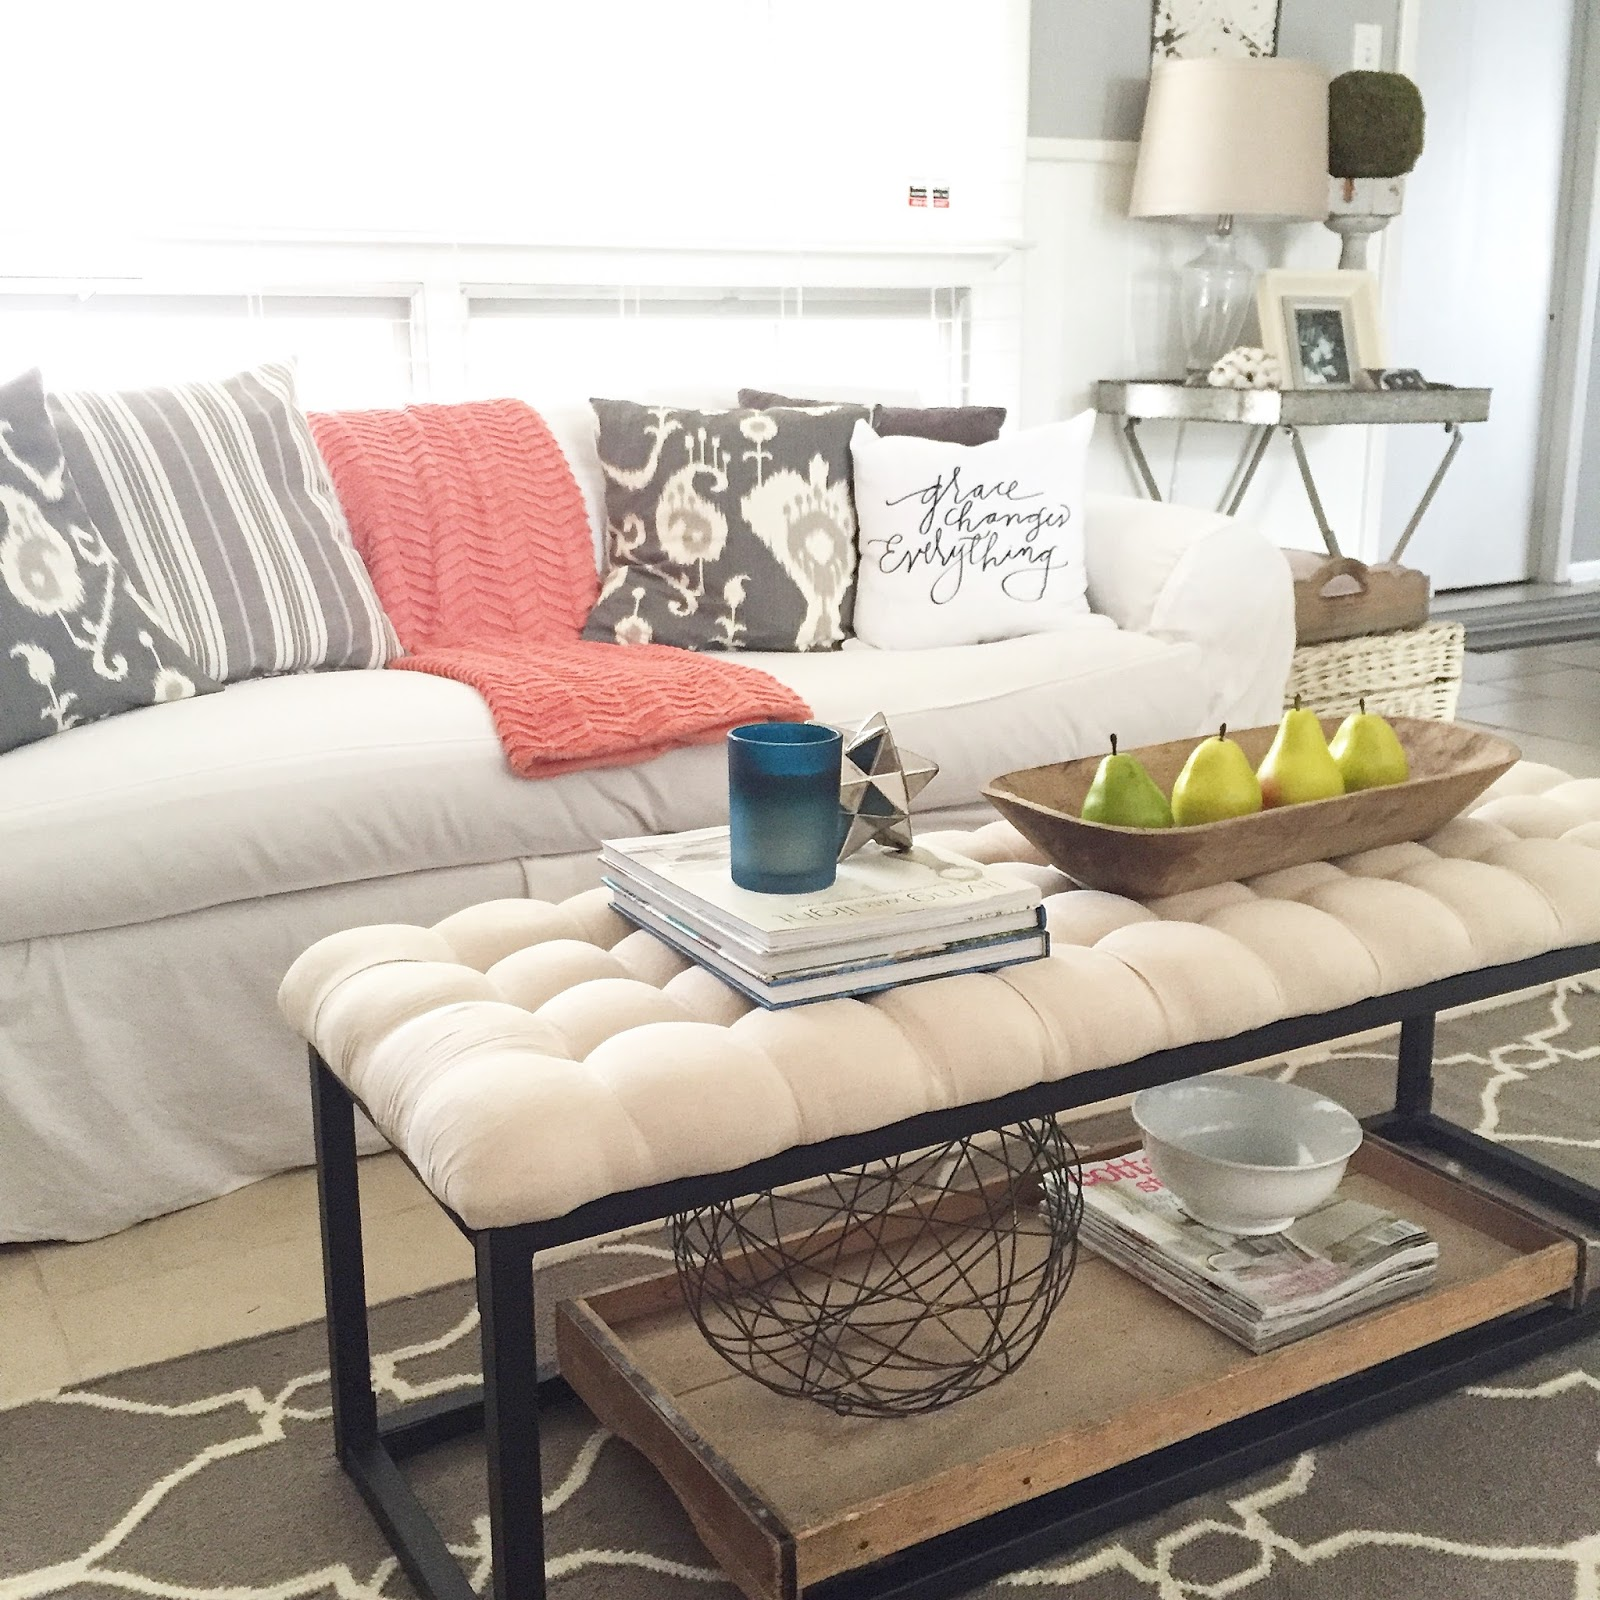 Modern Farmhouse Coffee Table: 12th And White: Modern Farmhouse Coffee Table